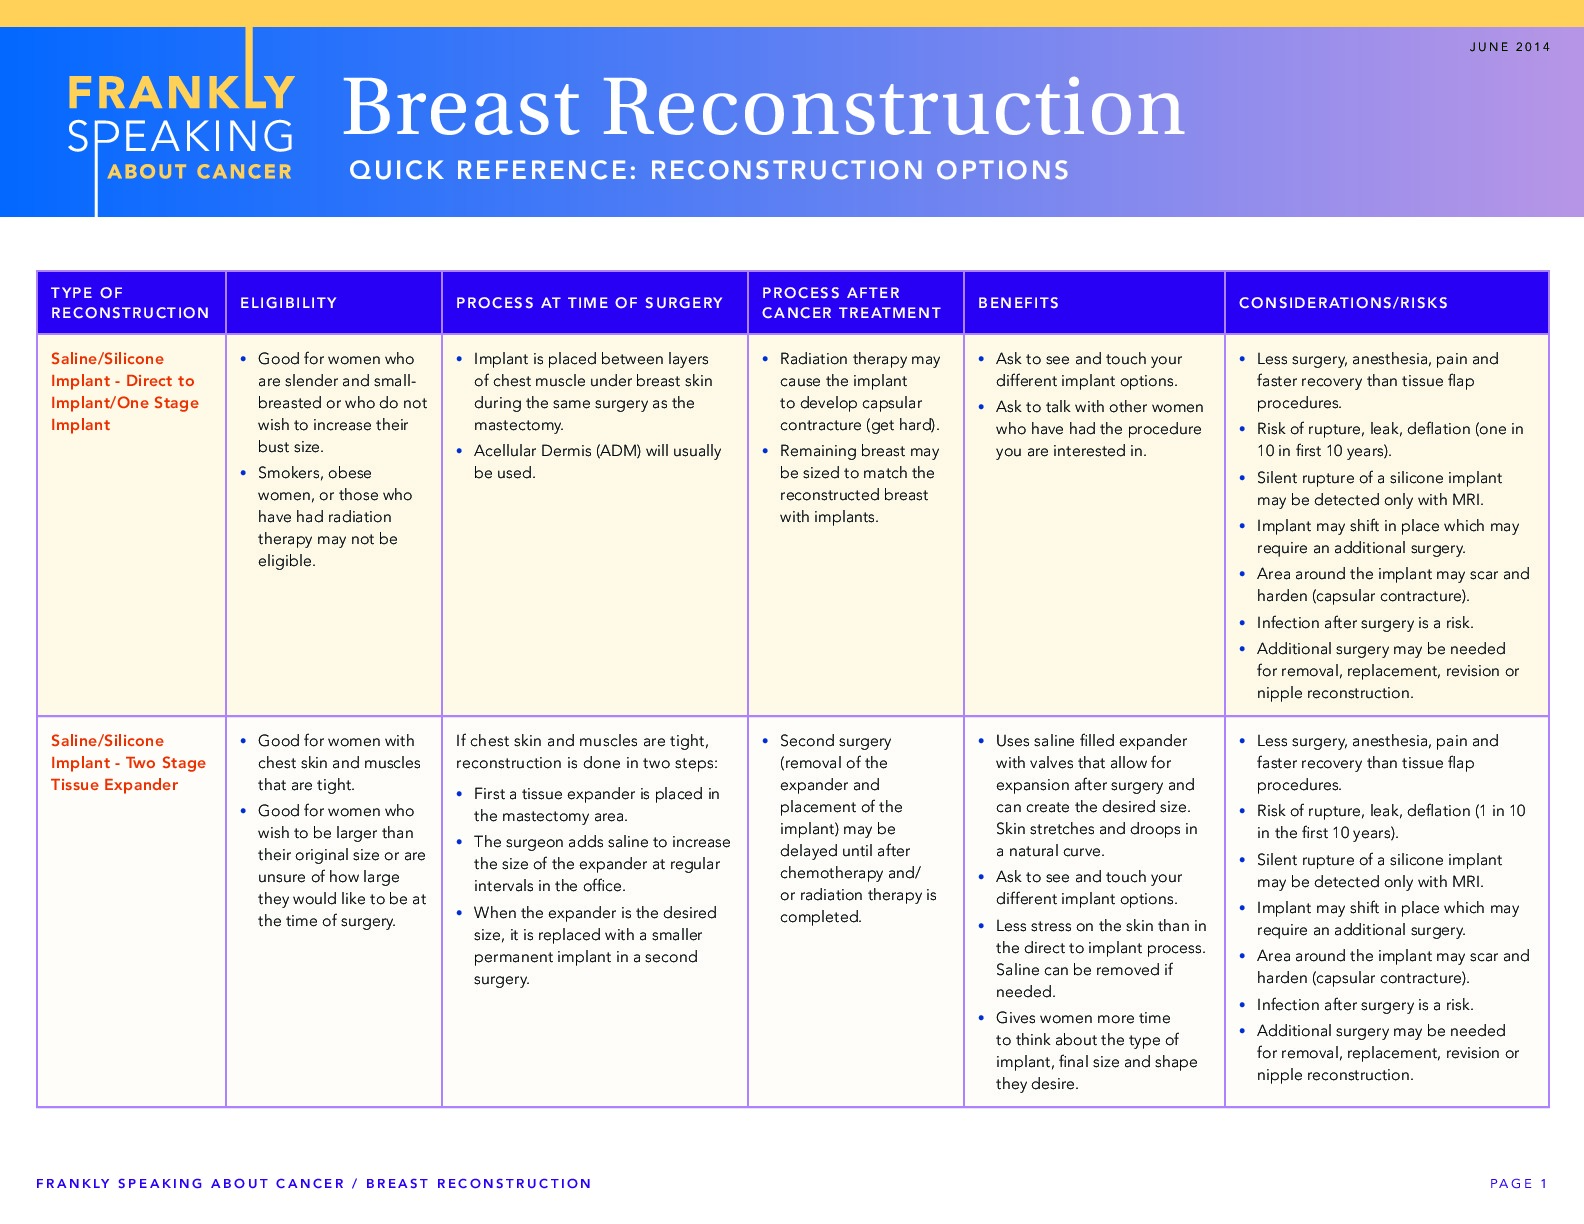 Frankly Speaking About Cancer: Breast Reconstruction Options